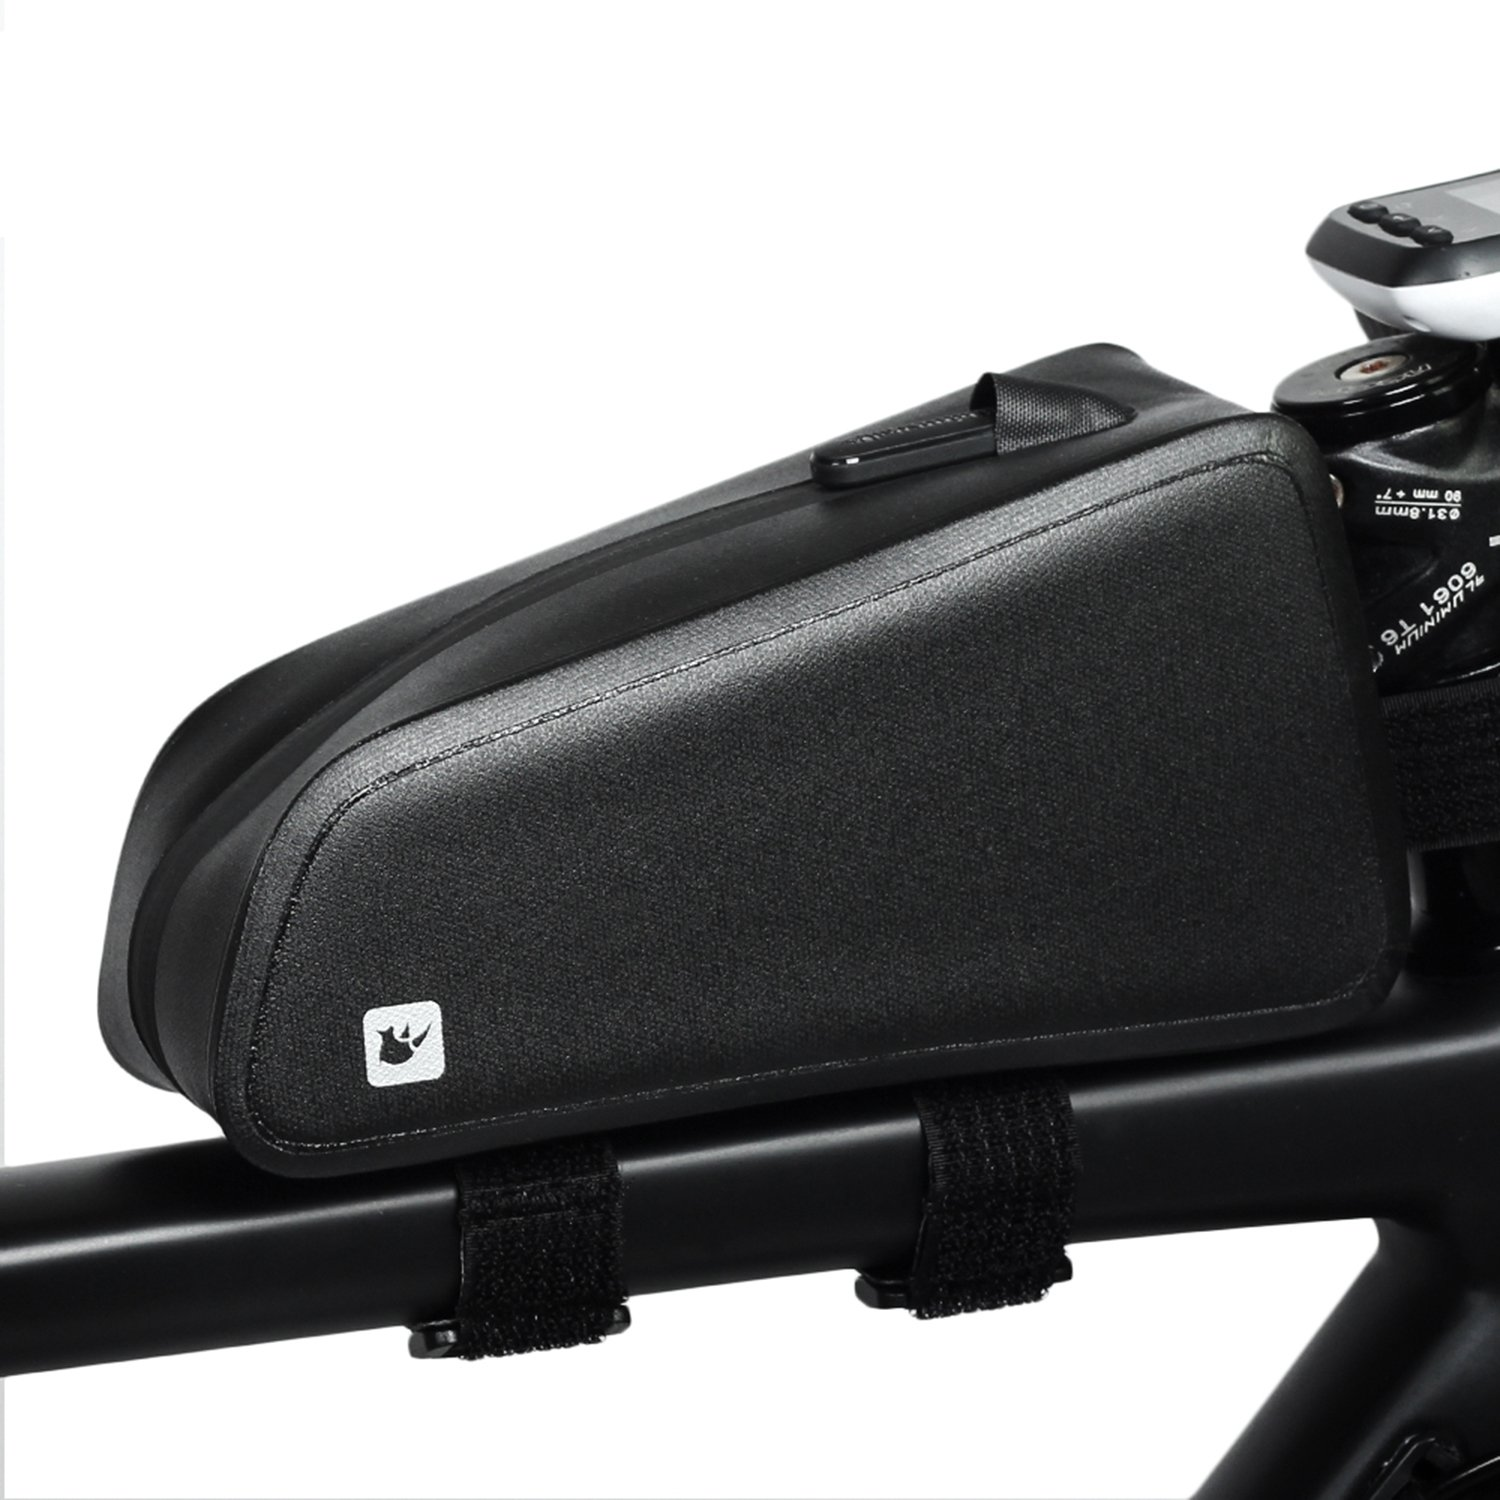 Bike Frame Bag Water Resistance Front Top Tube Bags Bicycle Punch with Shake Reduce Cushions for Professional Cycling Accessories by Sodee (Image #2)